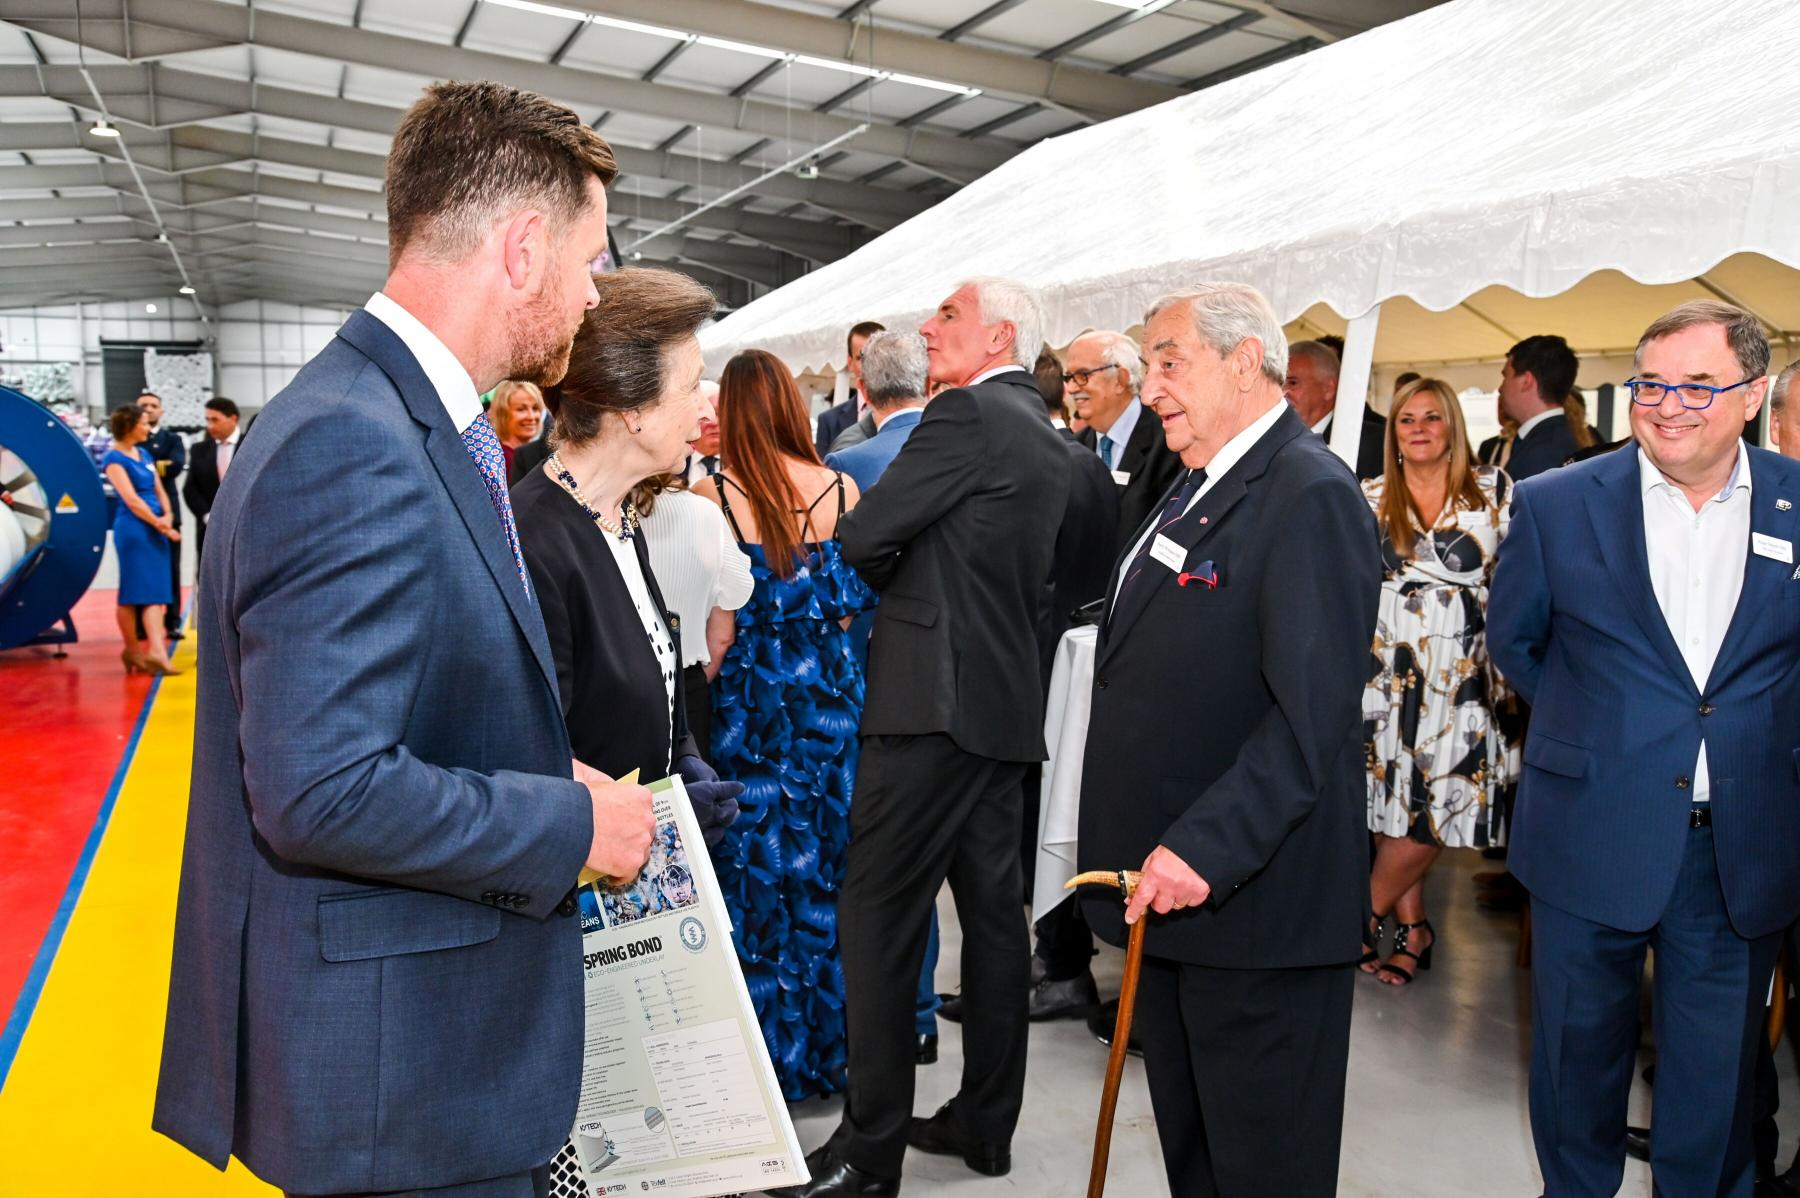 Society's Vice Chairman Meets Royalty in Bradford.